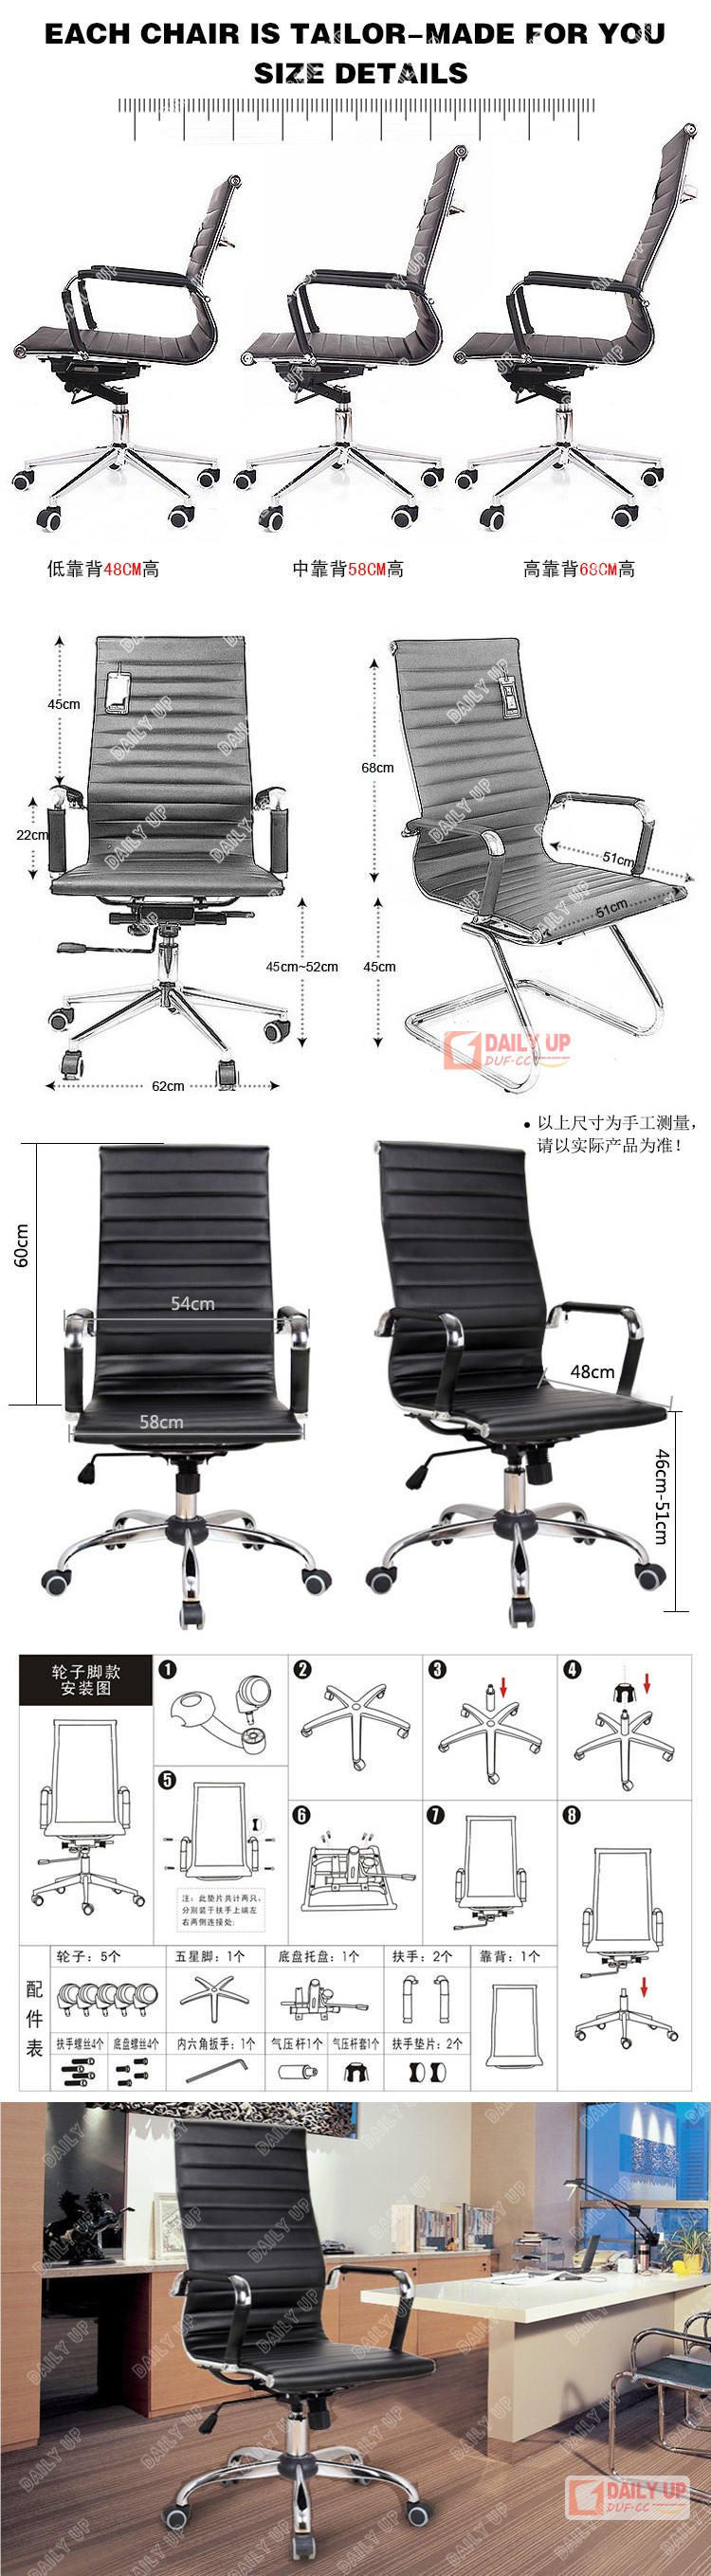 Office Chair Parts Black Pu Leather Office Chair Dimensions Manager Chair Parts